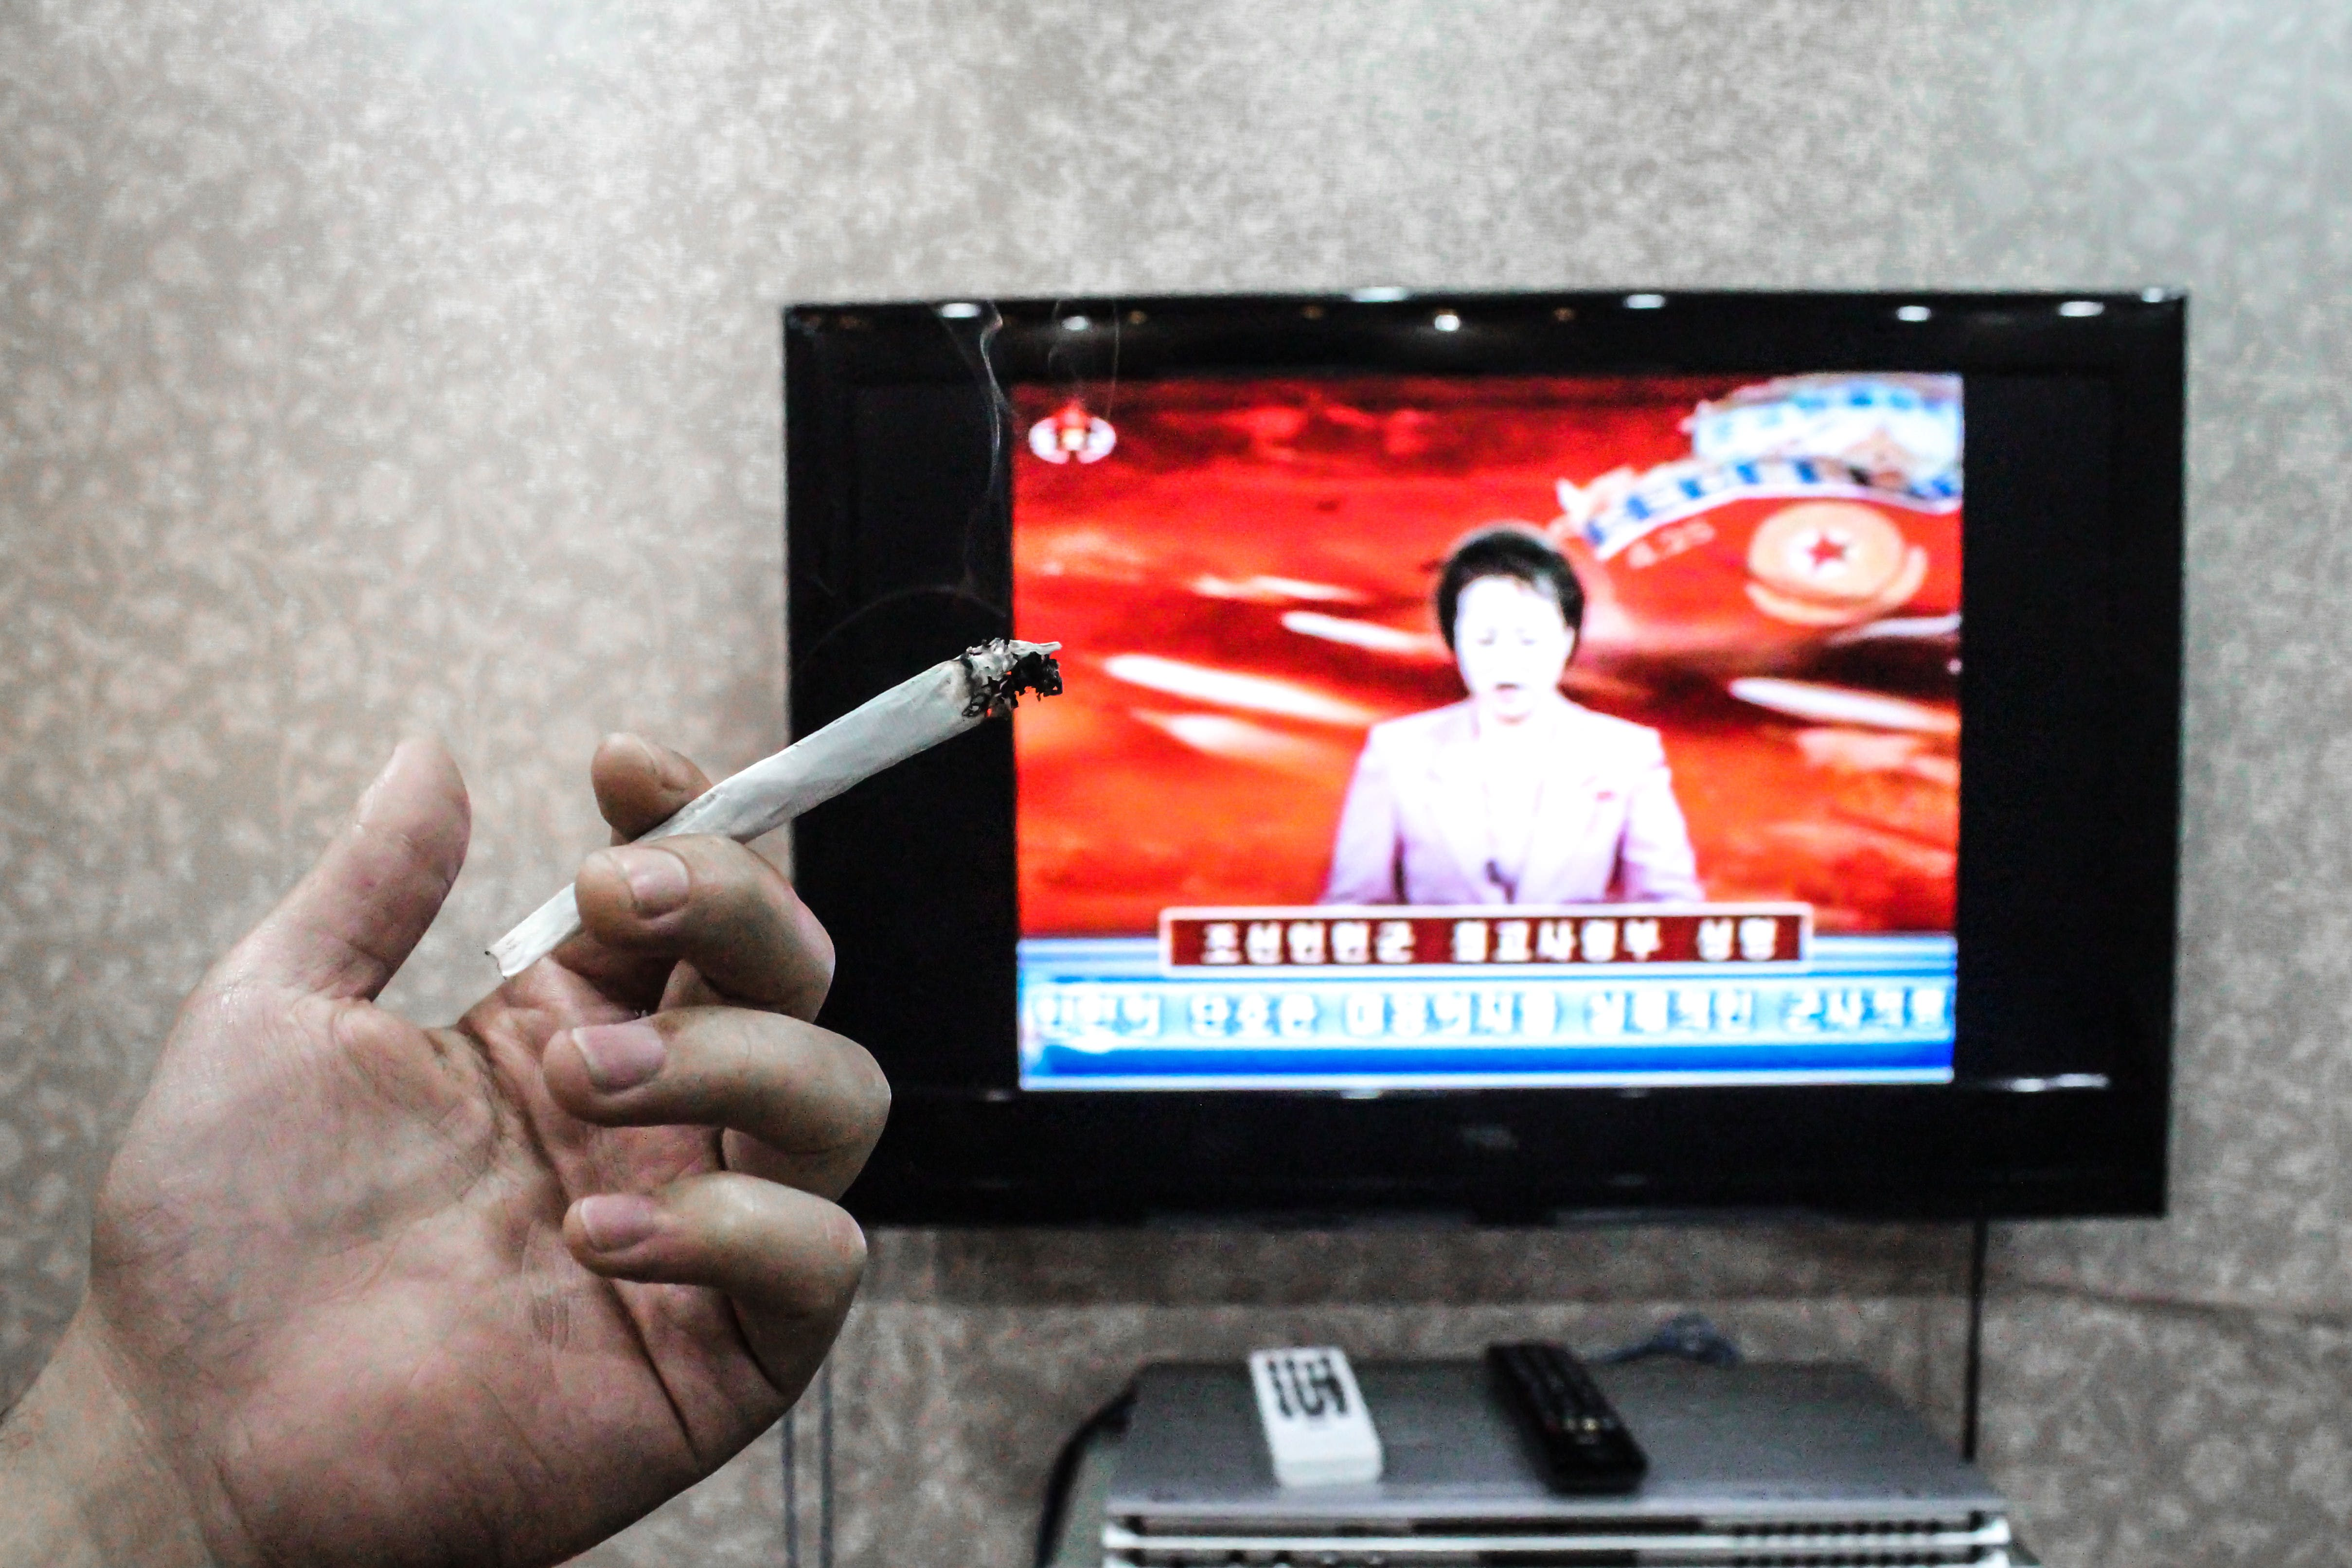 Smoking Weed in North Korea 9 Its Official: Michigan is set to vote on recreational marijuana this fall